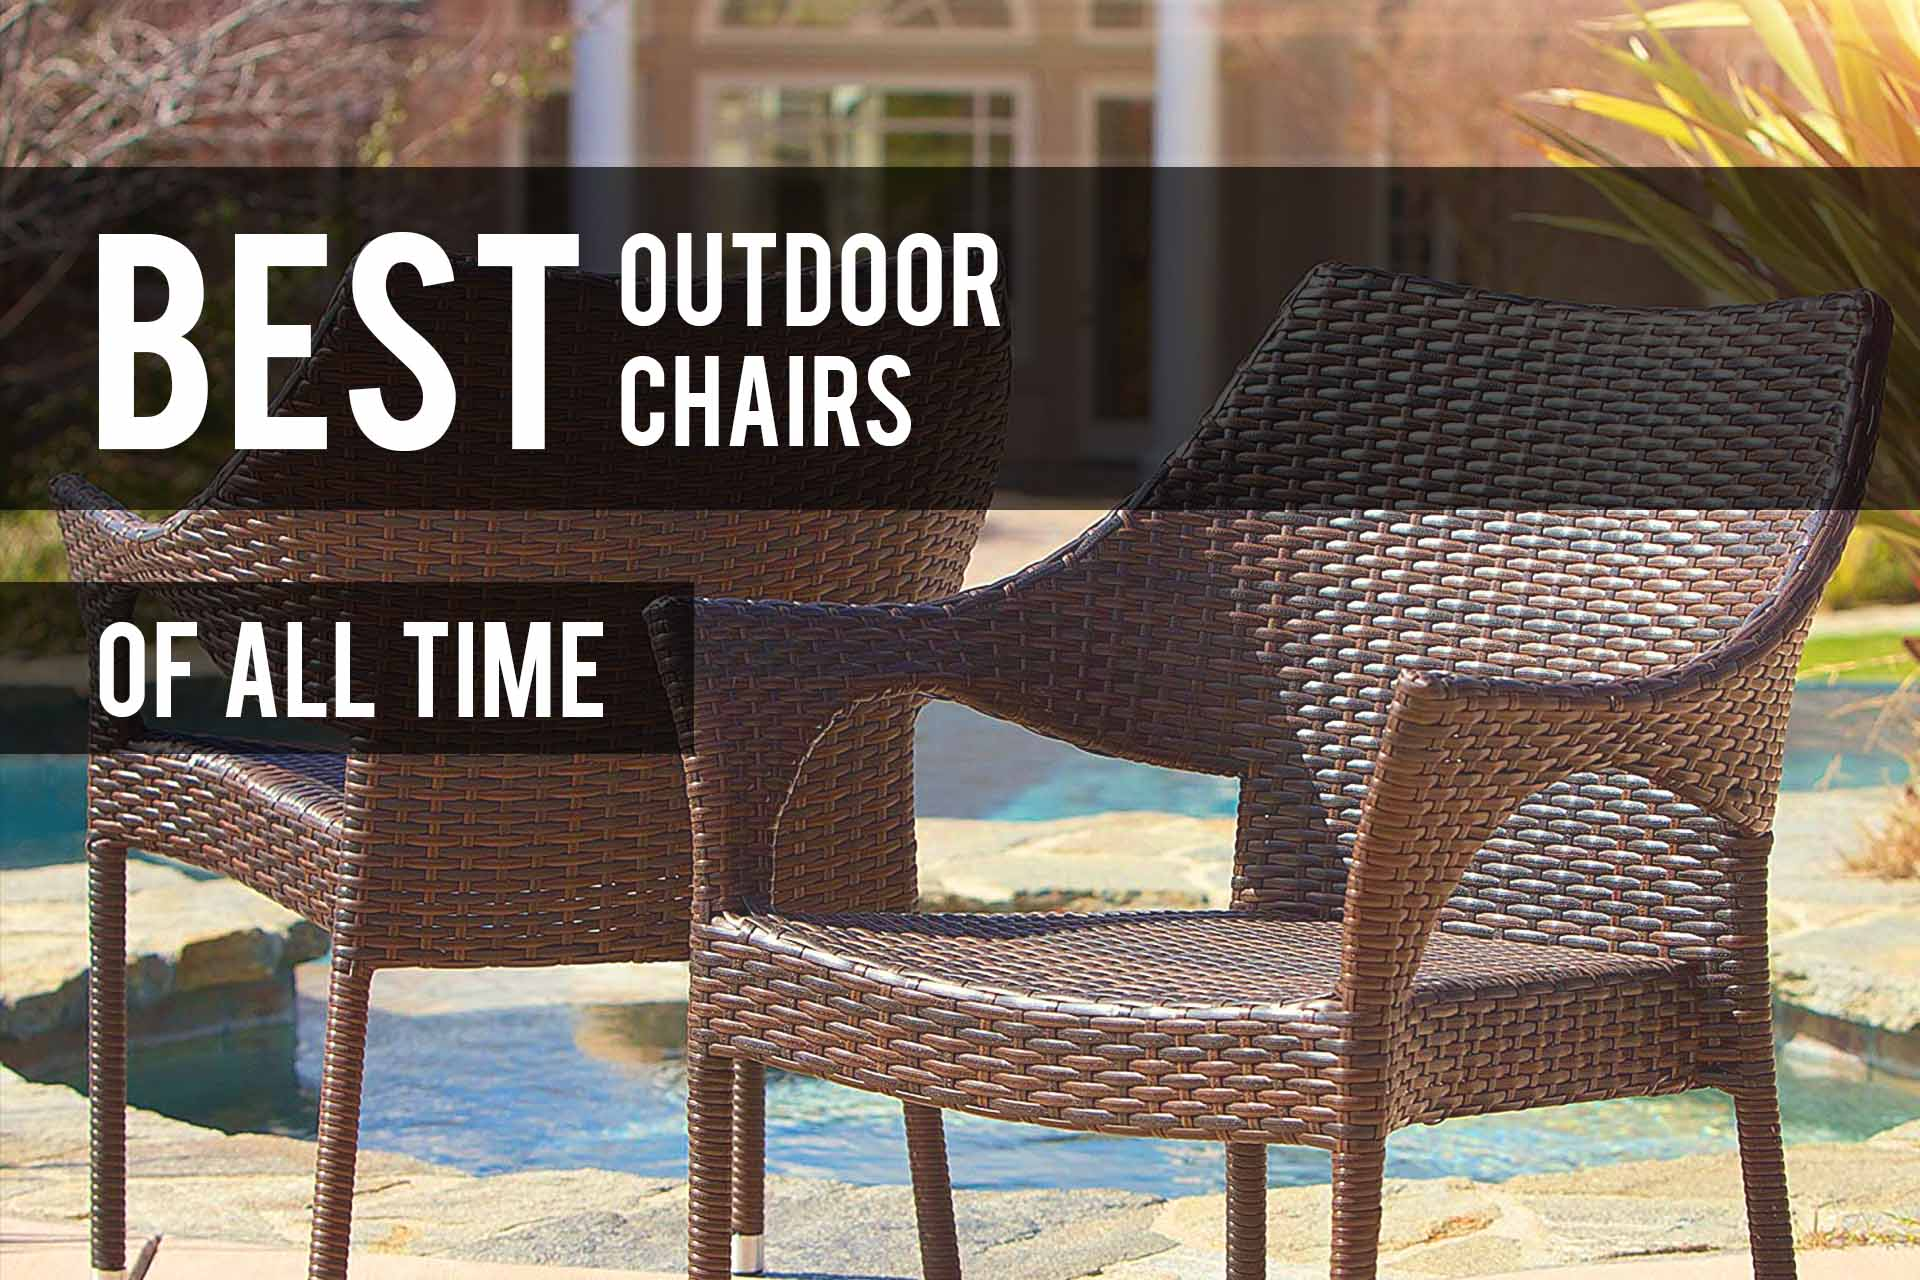 Pleasing Best Outdoor Chairs 2019 Reviews The Patio Pro Squirreltailoven Fun Painted Chair Ideas Images Squirreltailovenorg